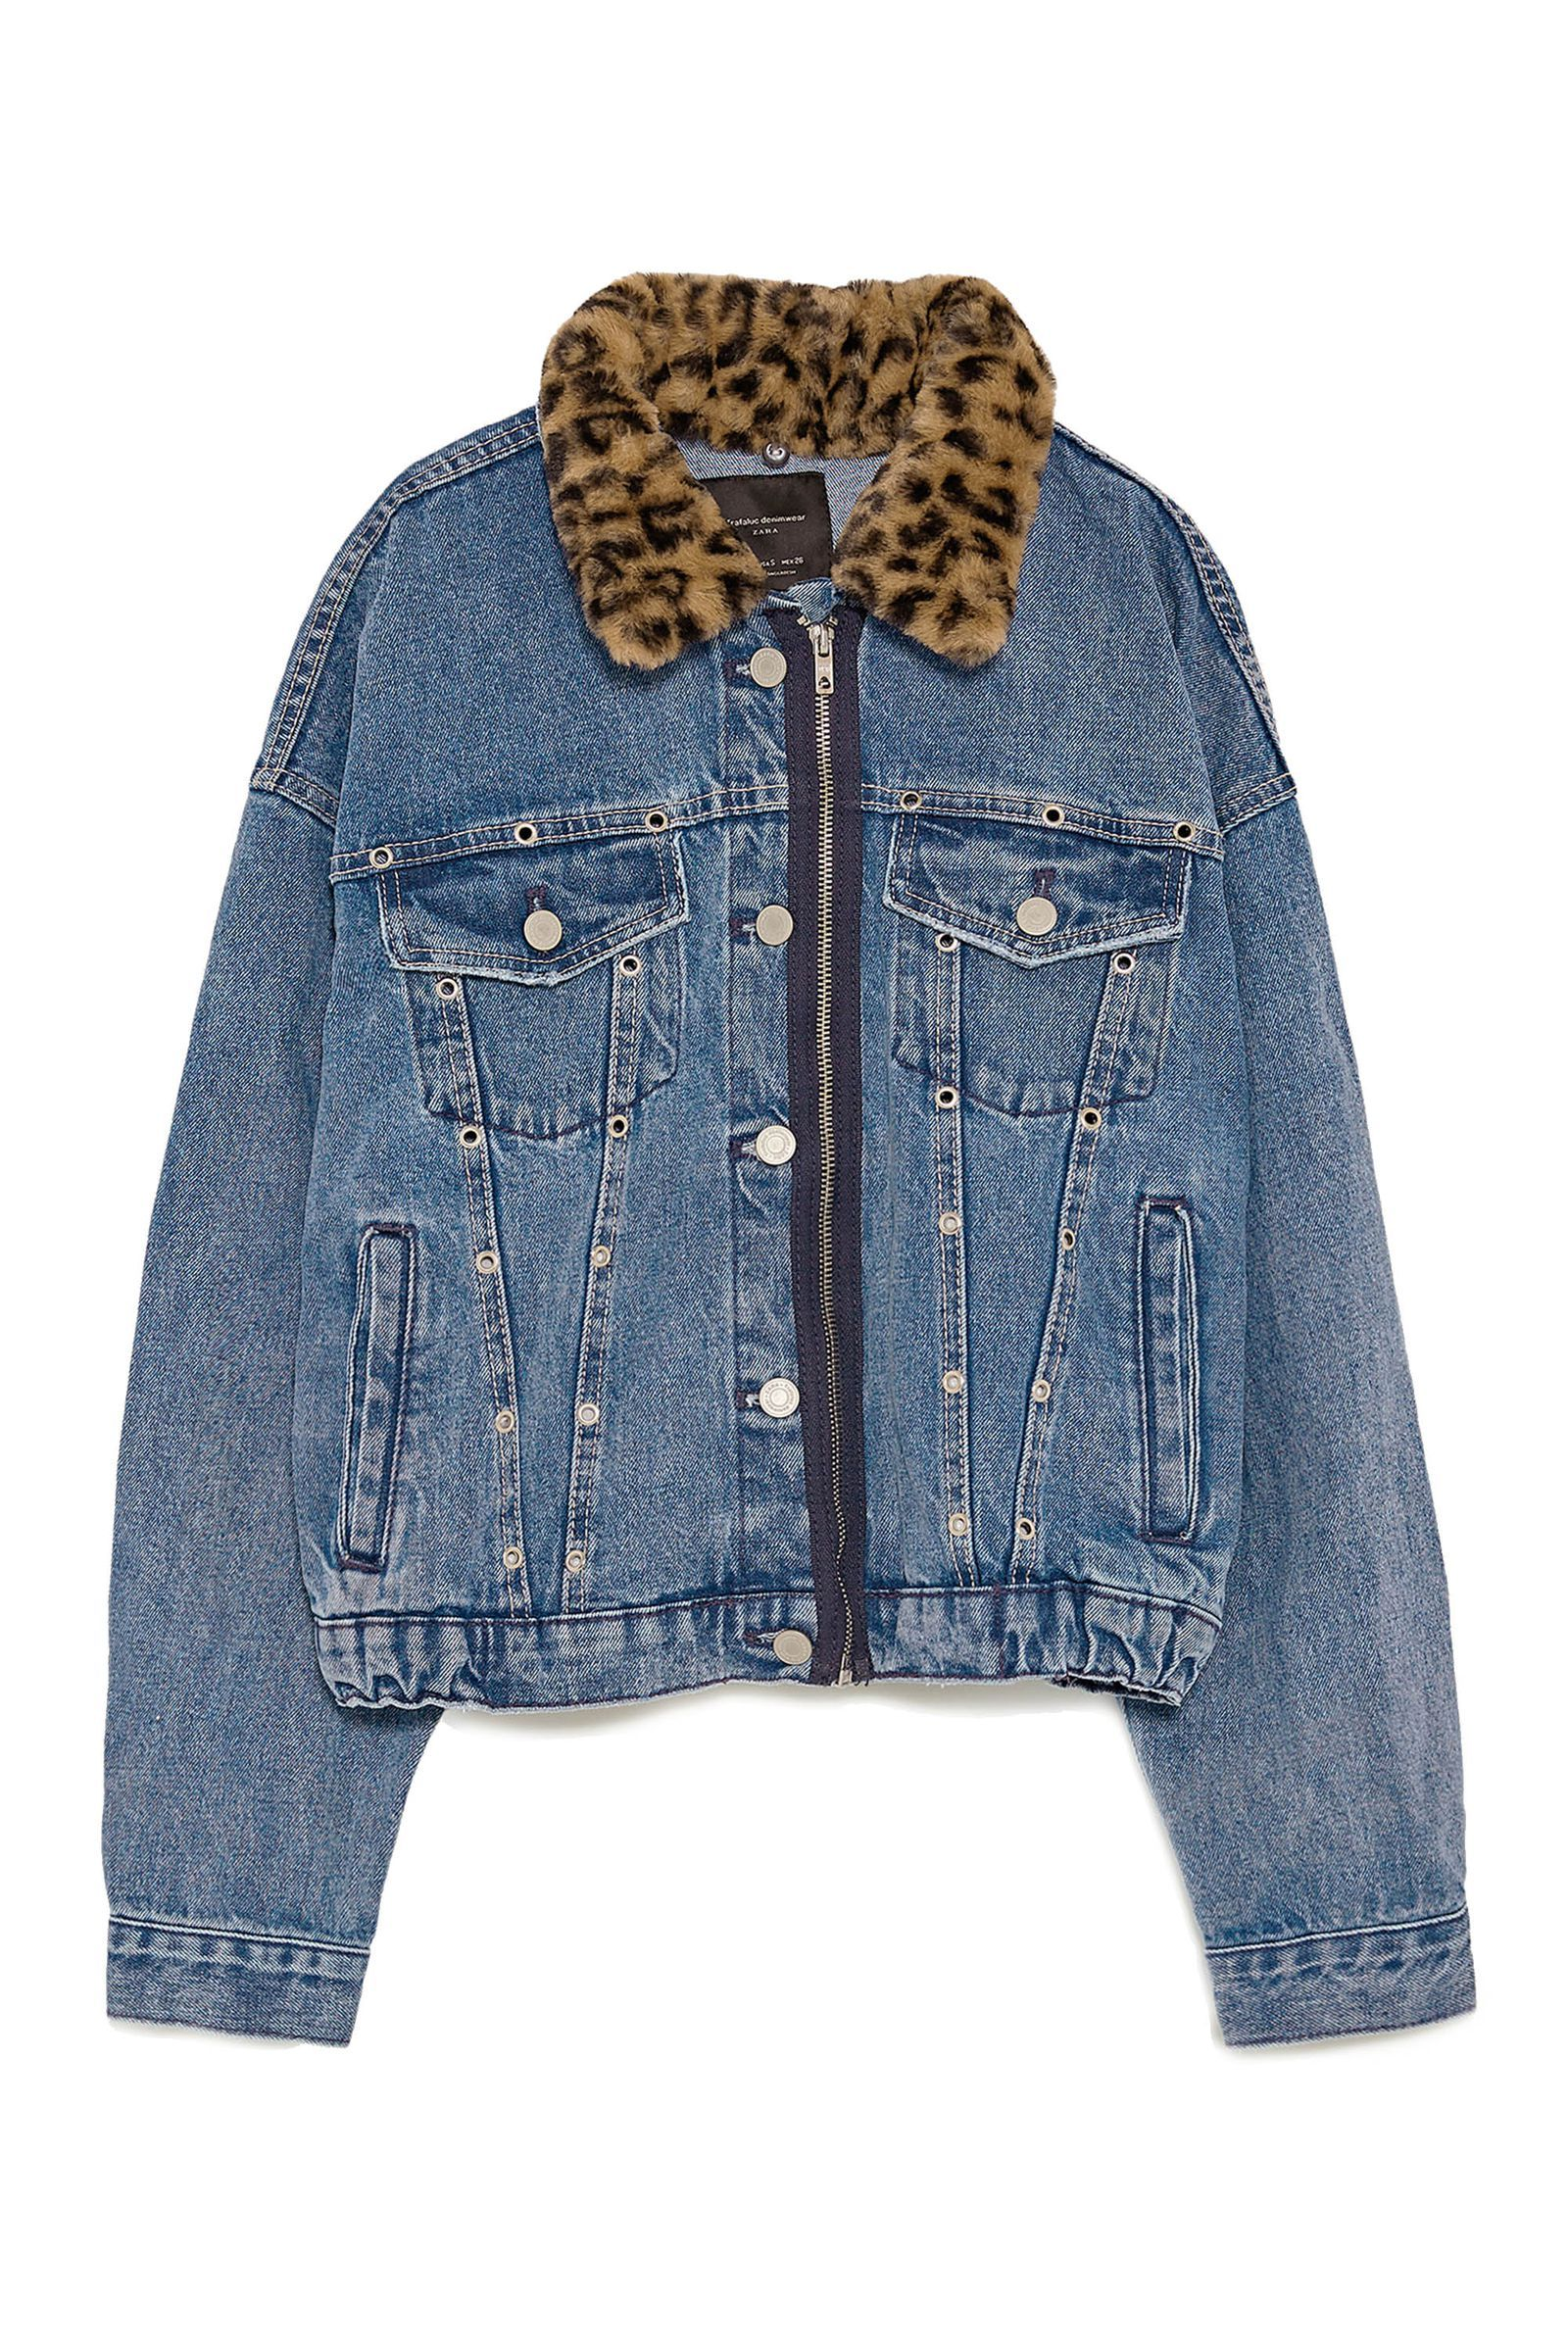 15 Ways To Reimagine Variations On The Denim Jacket Zara Denim Jacket Denim Jacket With Fur Fur Jacket Outfit [ 2400 x 1600 Pixel ]